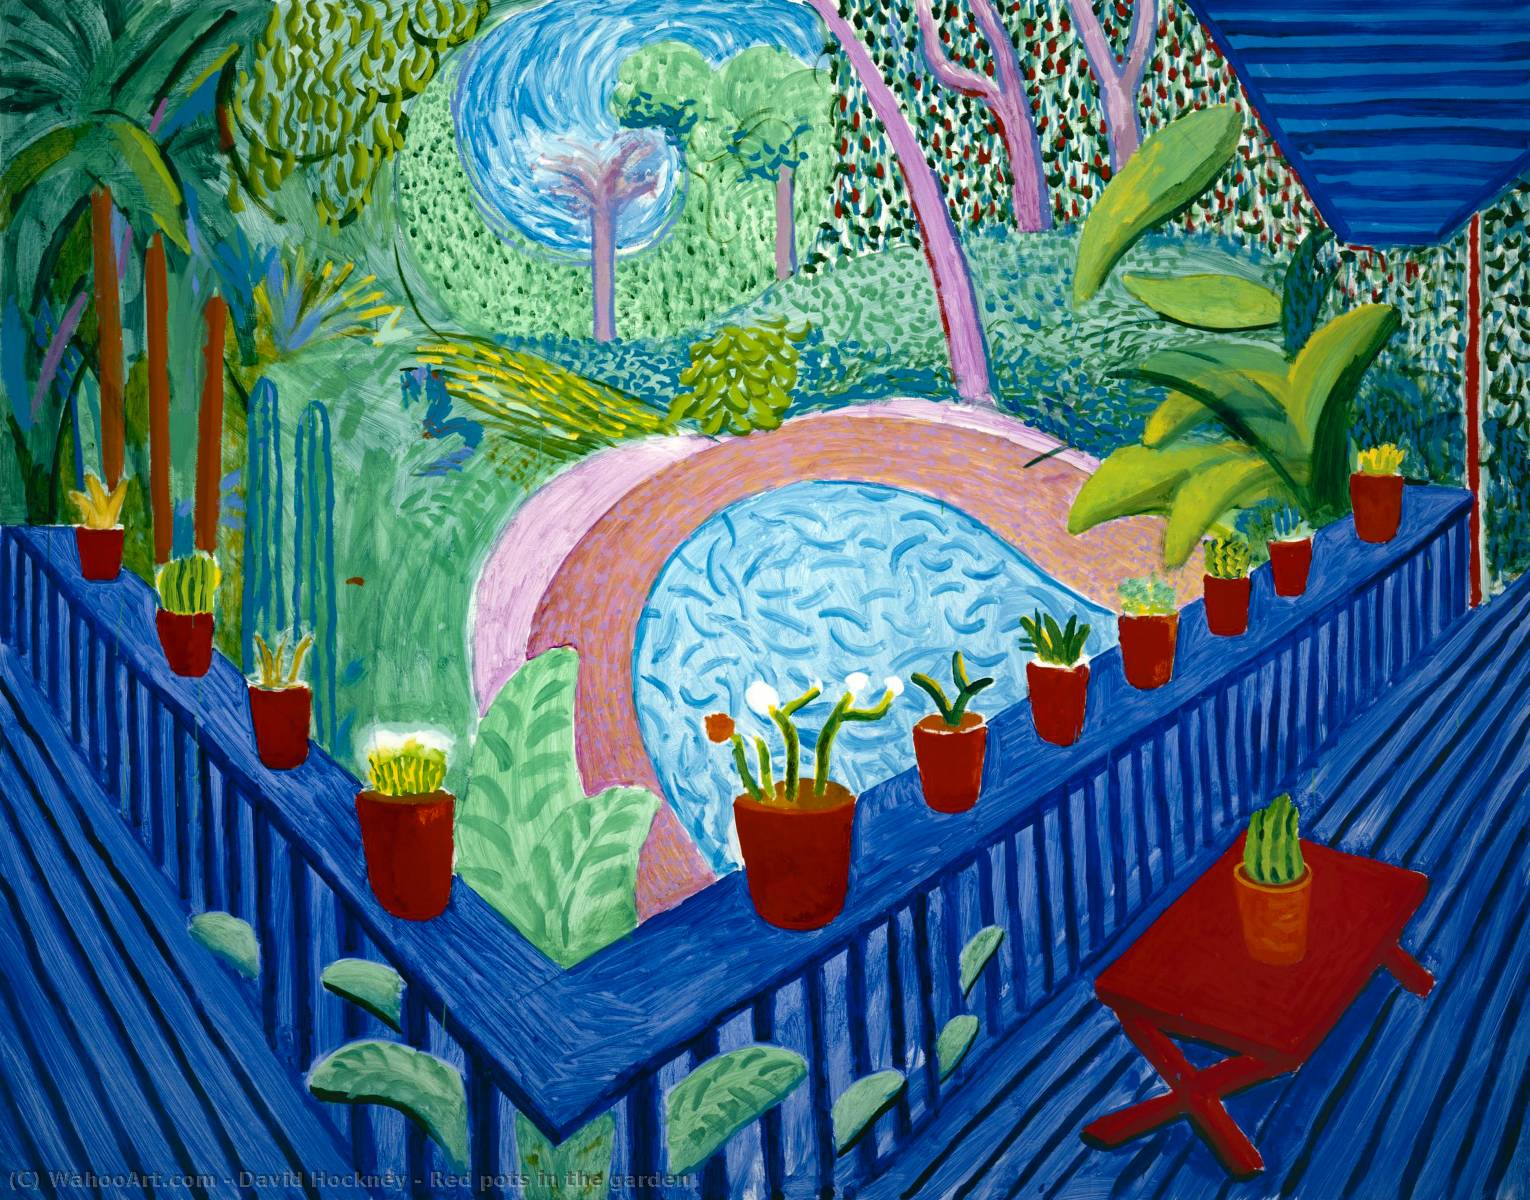 famous painting Red pots in the garden of David Hockney